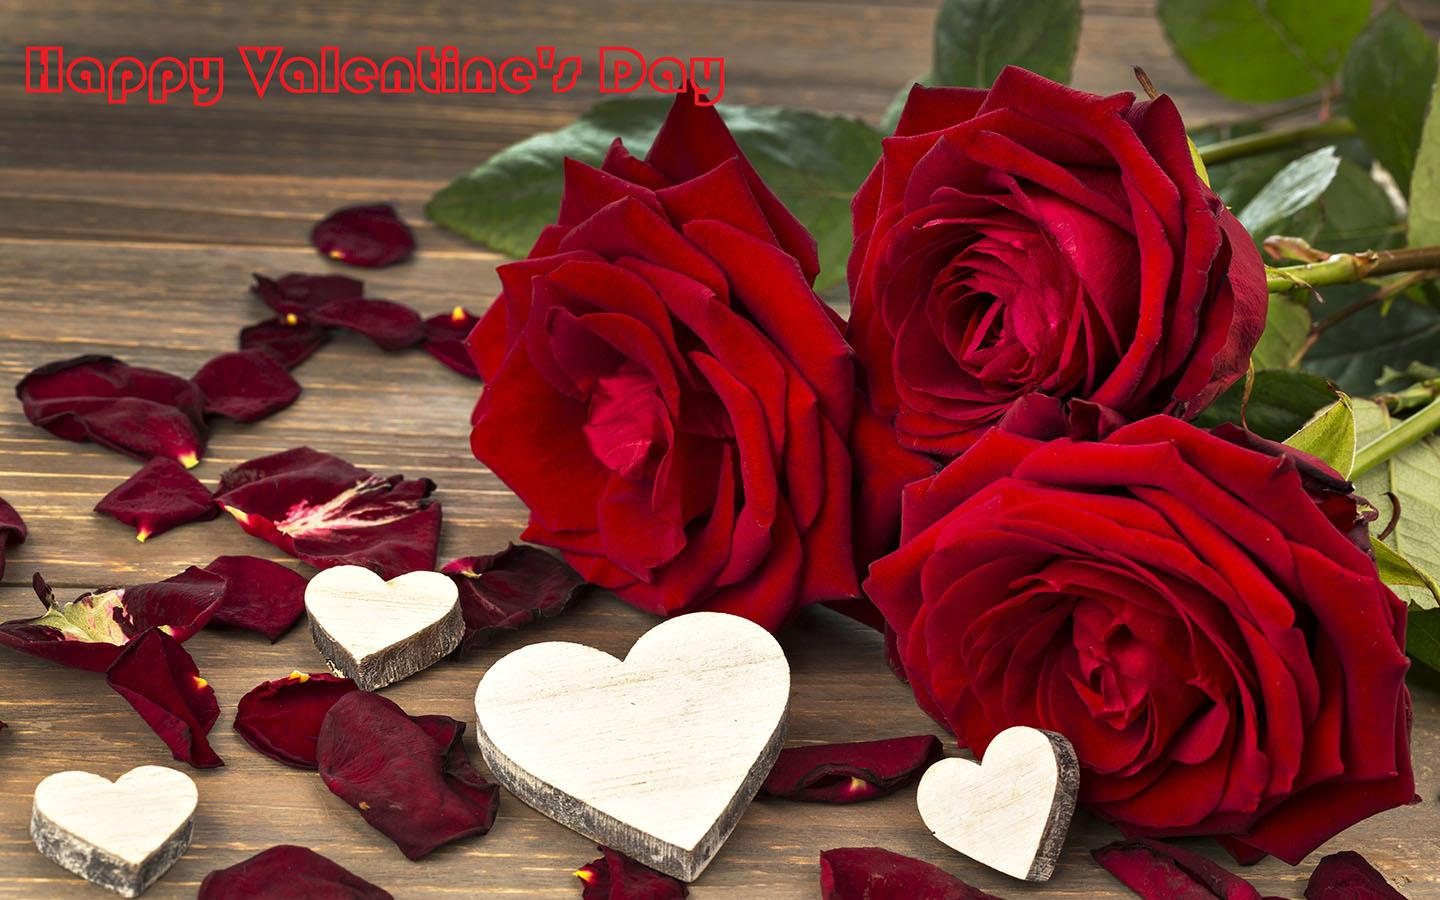 happy valentines day wallpaper  android apps on google play, Beautiful flower